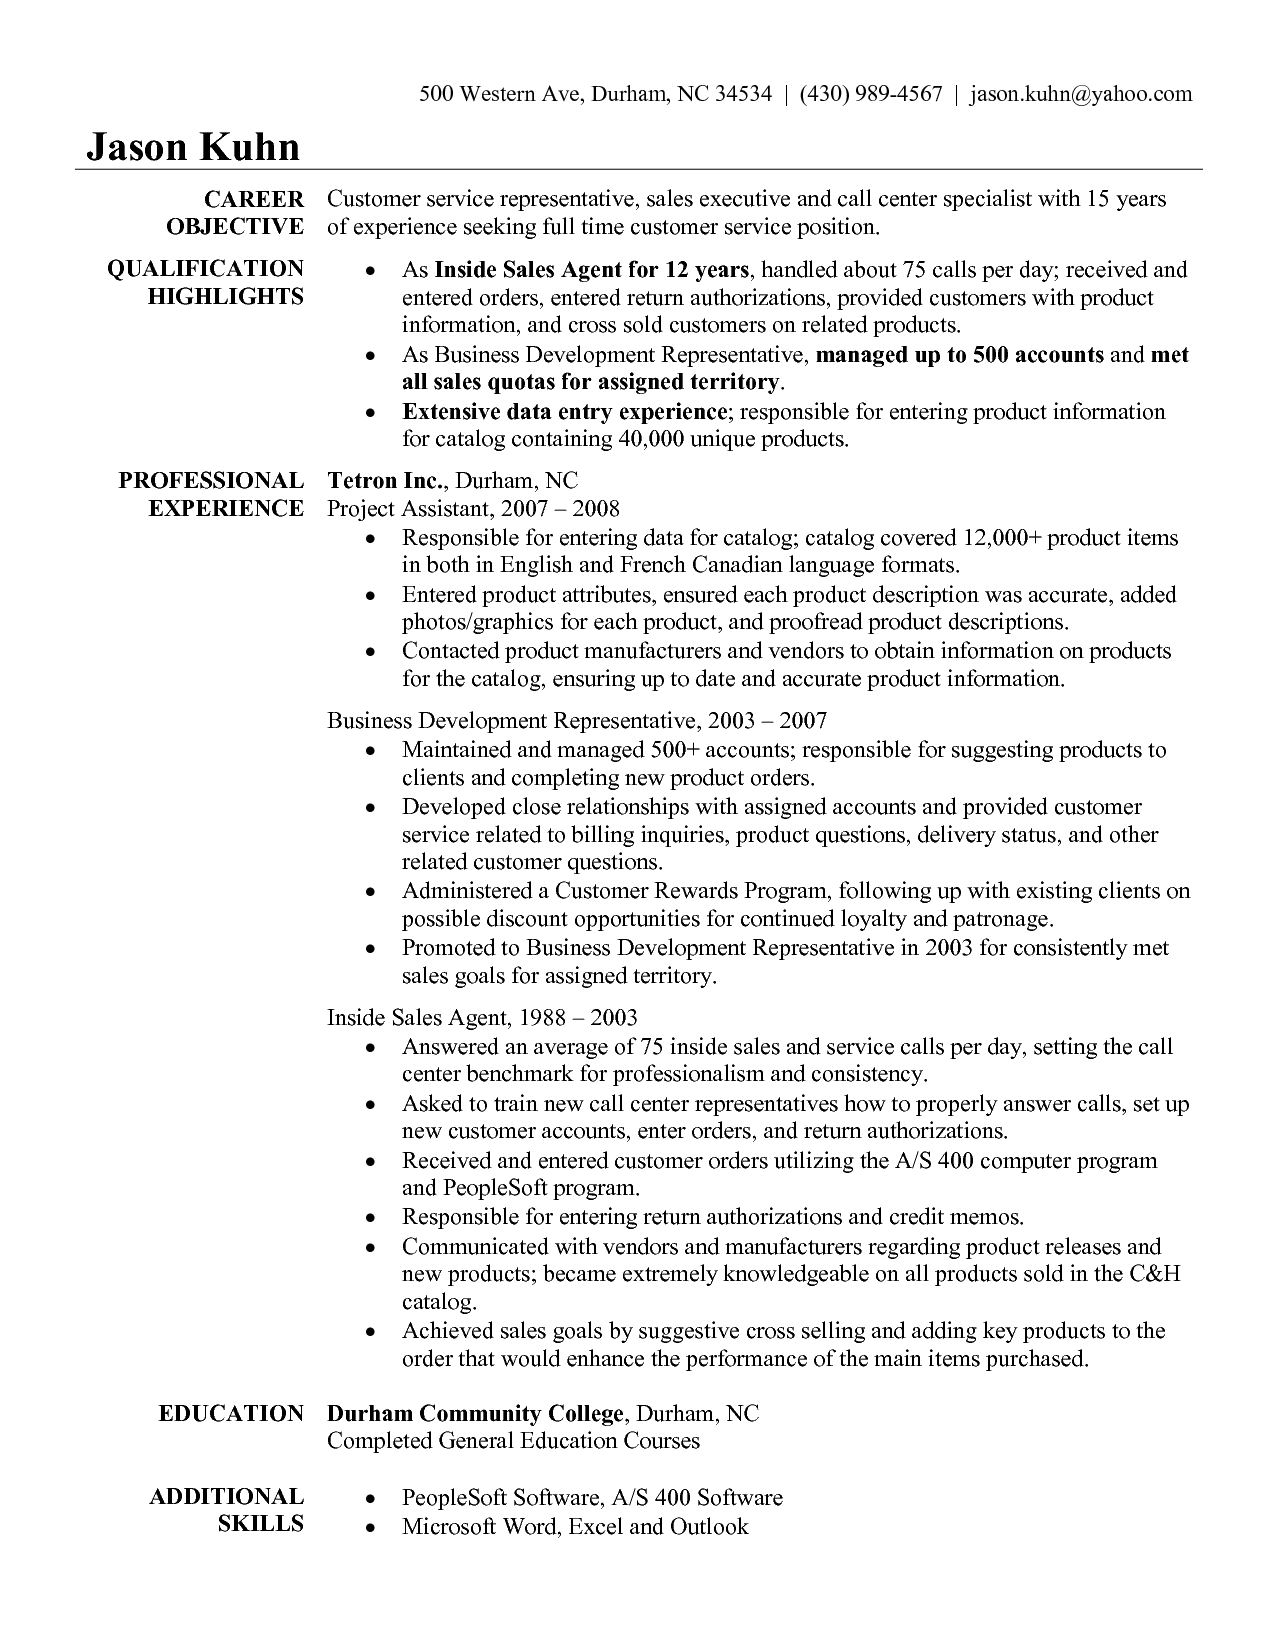 Resume Profile Examples Insurance Claims Representative Resume Sample  Httpwww